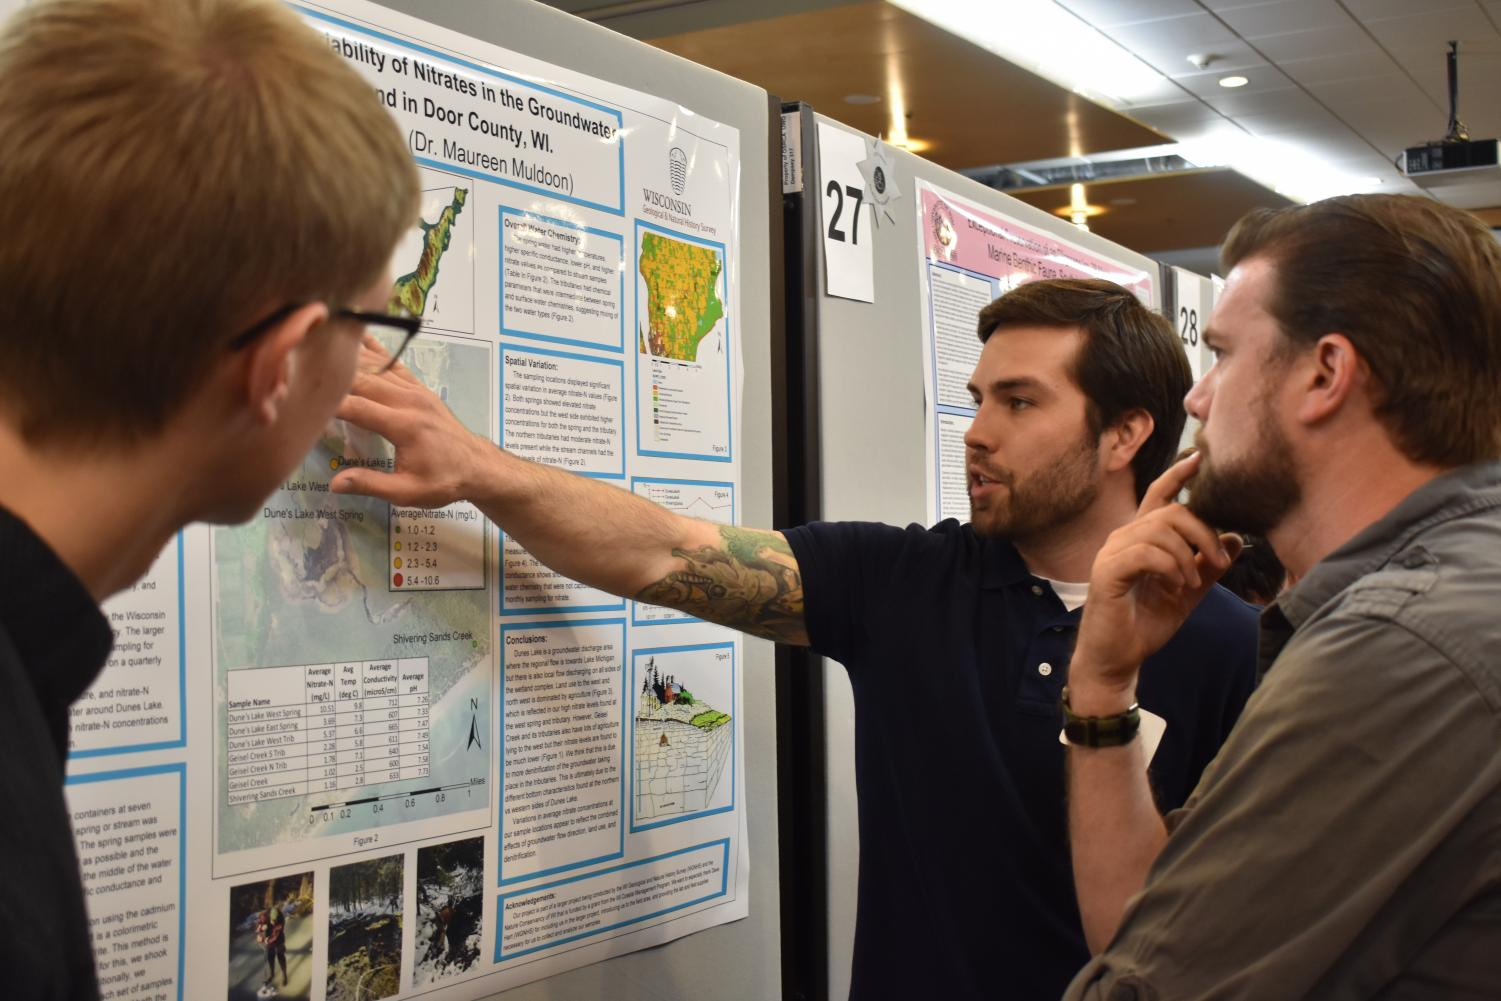 UWO Student explains his project to visitors at the Celebration of Scholarship and Creativity event.